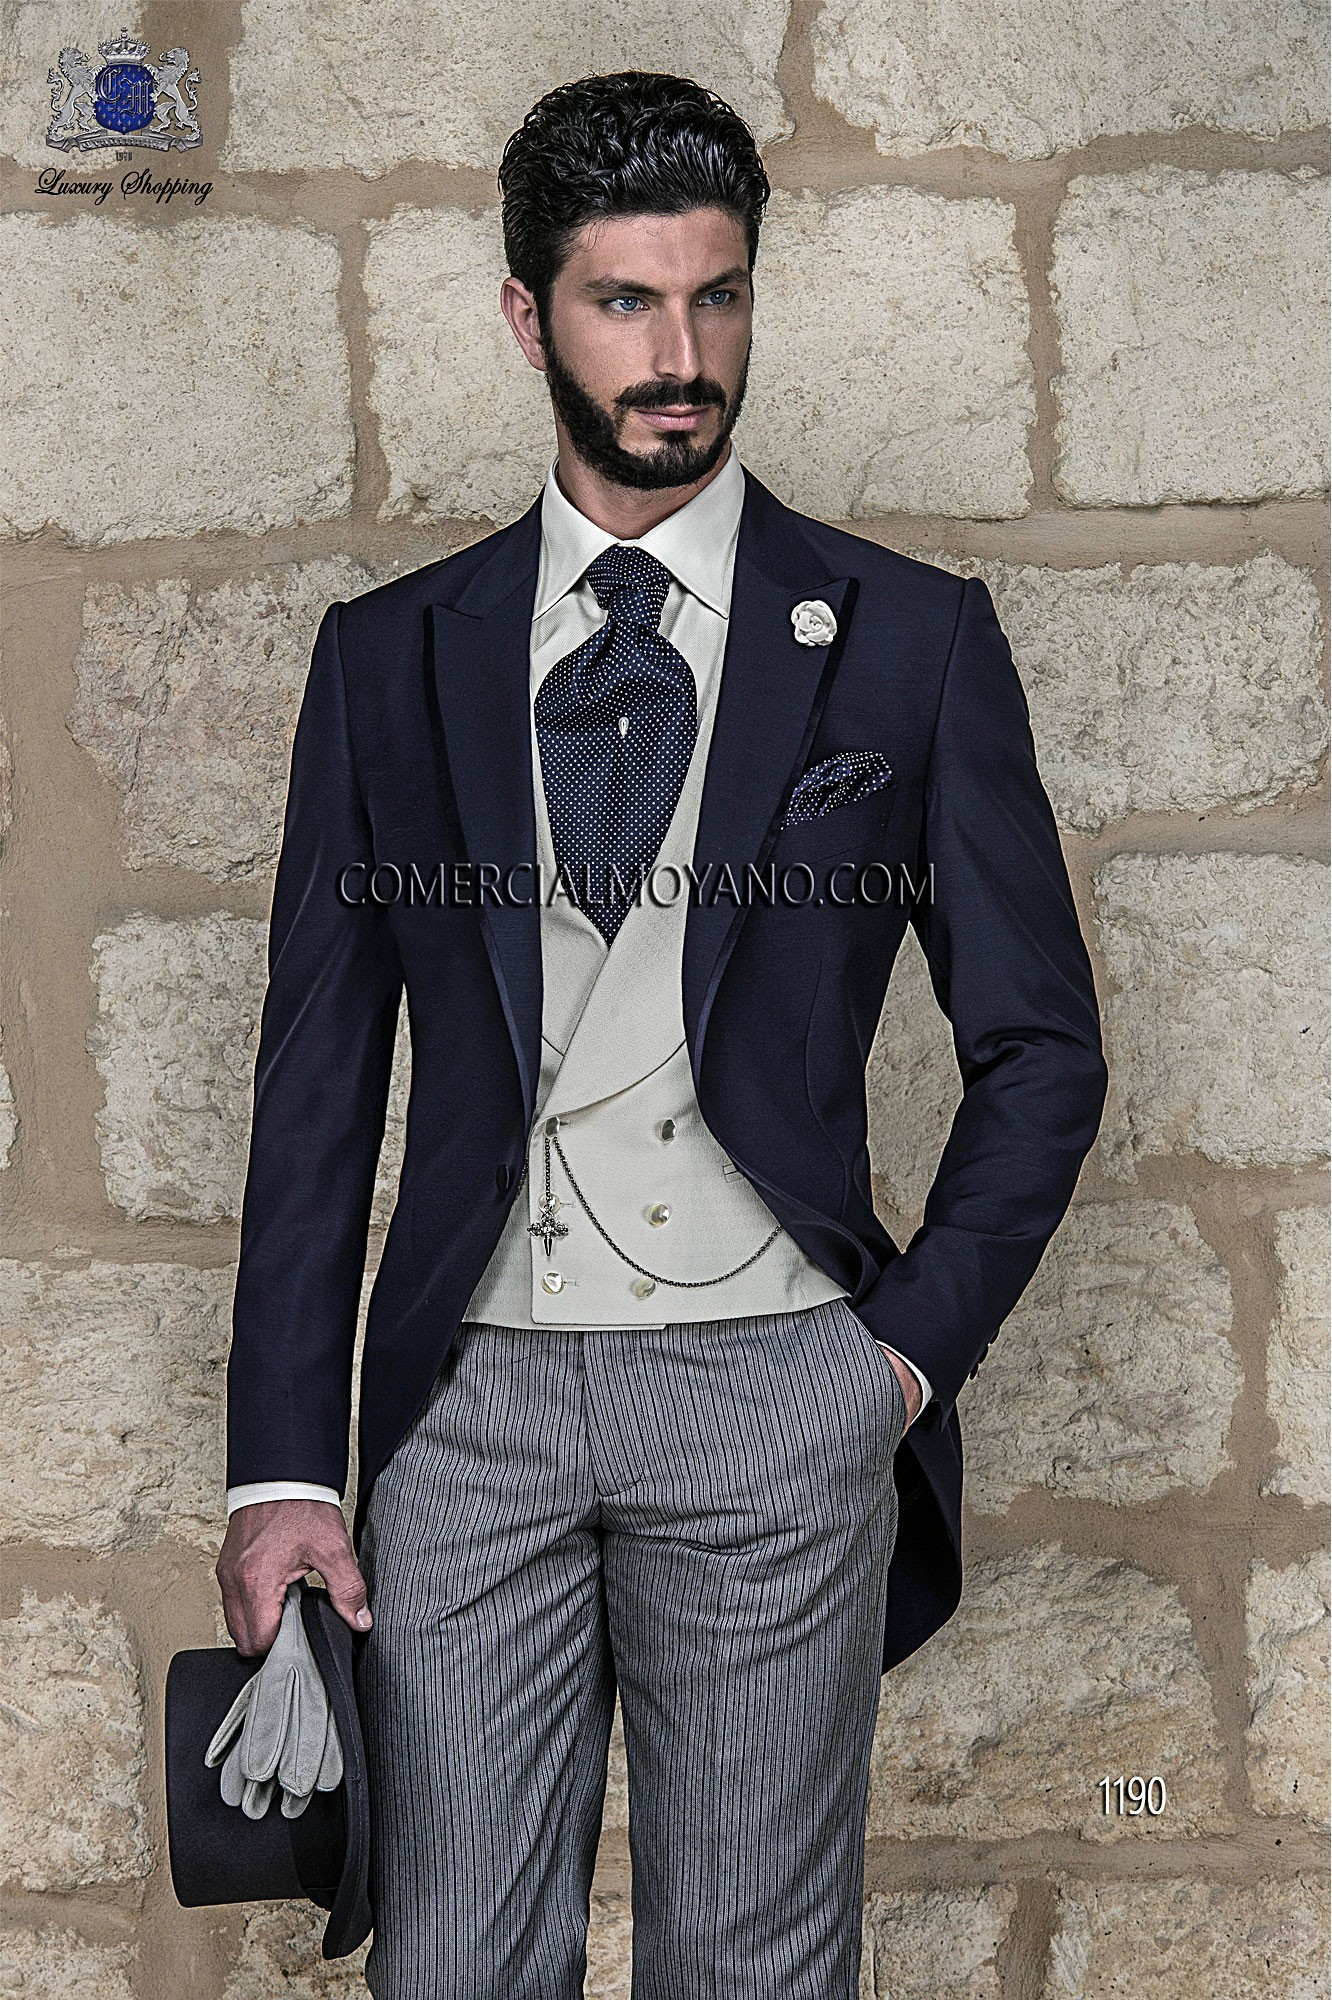 Italian bespoke blue short frock wedding morning suit, with diplomatic pants and ivory waistcoat, style 1190 Ottavio Nuccio Gala, Gentleman collection.